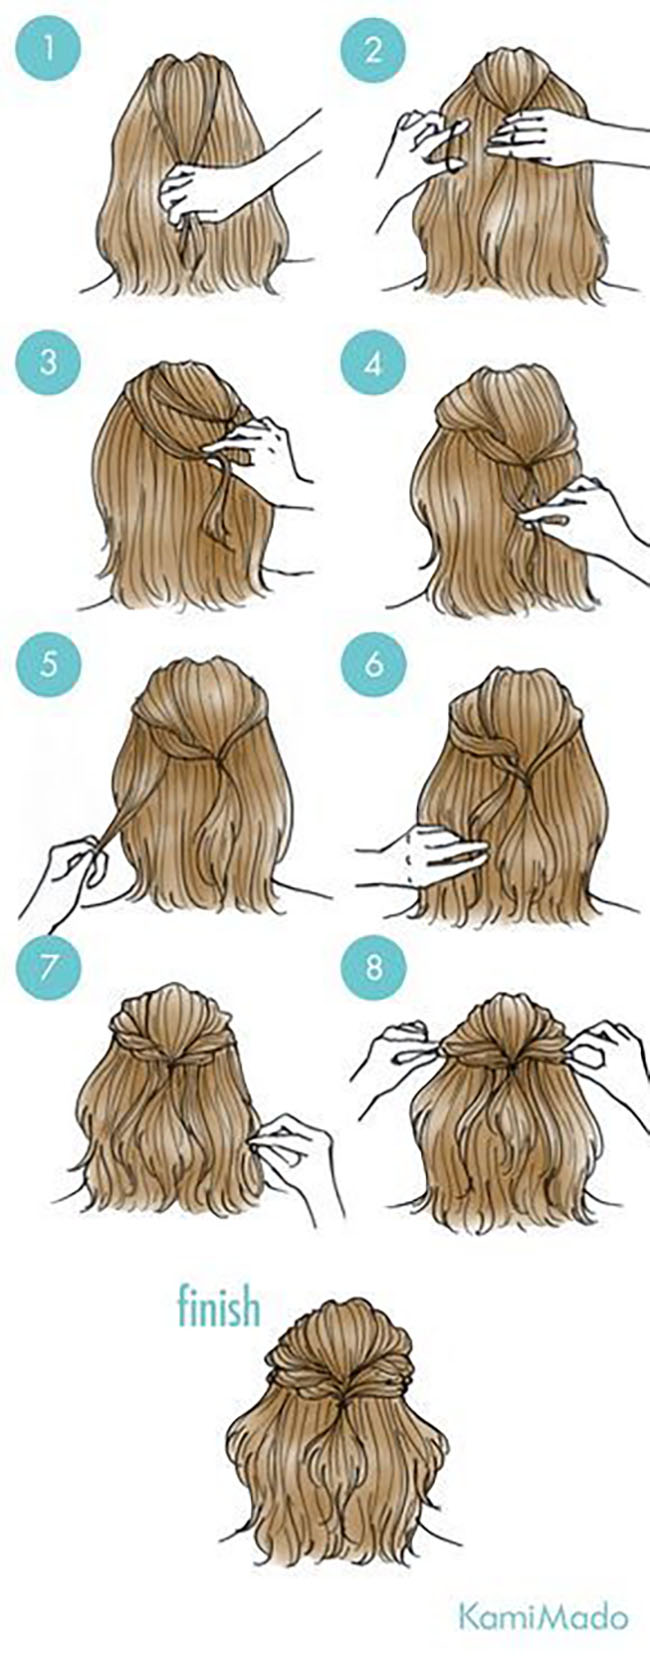 65 Easy And Cute Hairstyles That Can Be Done In Just A Few Minutes